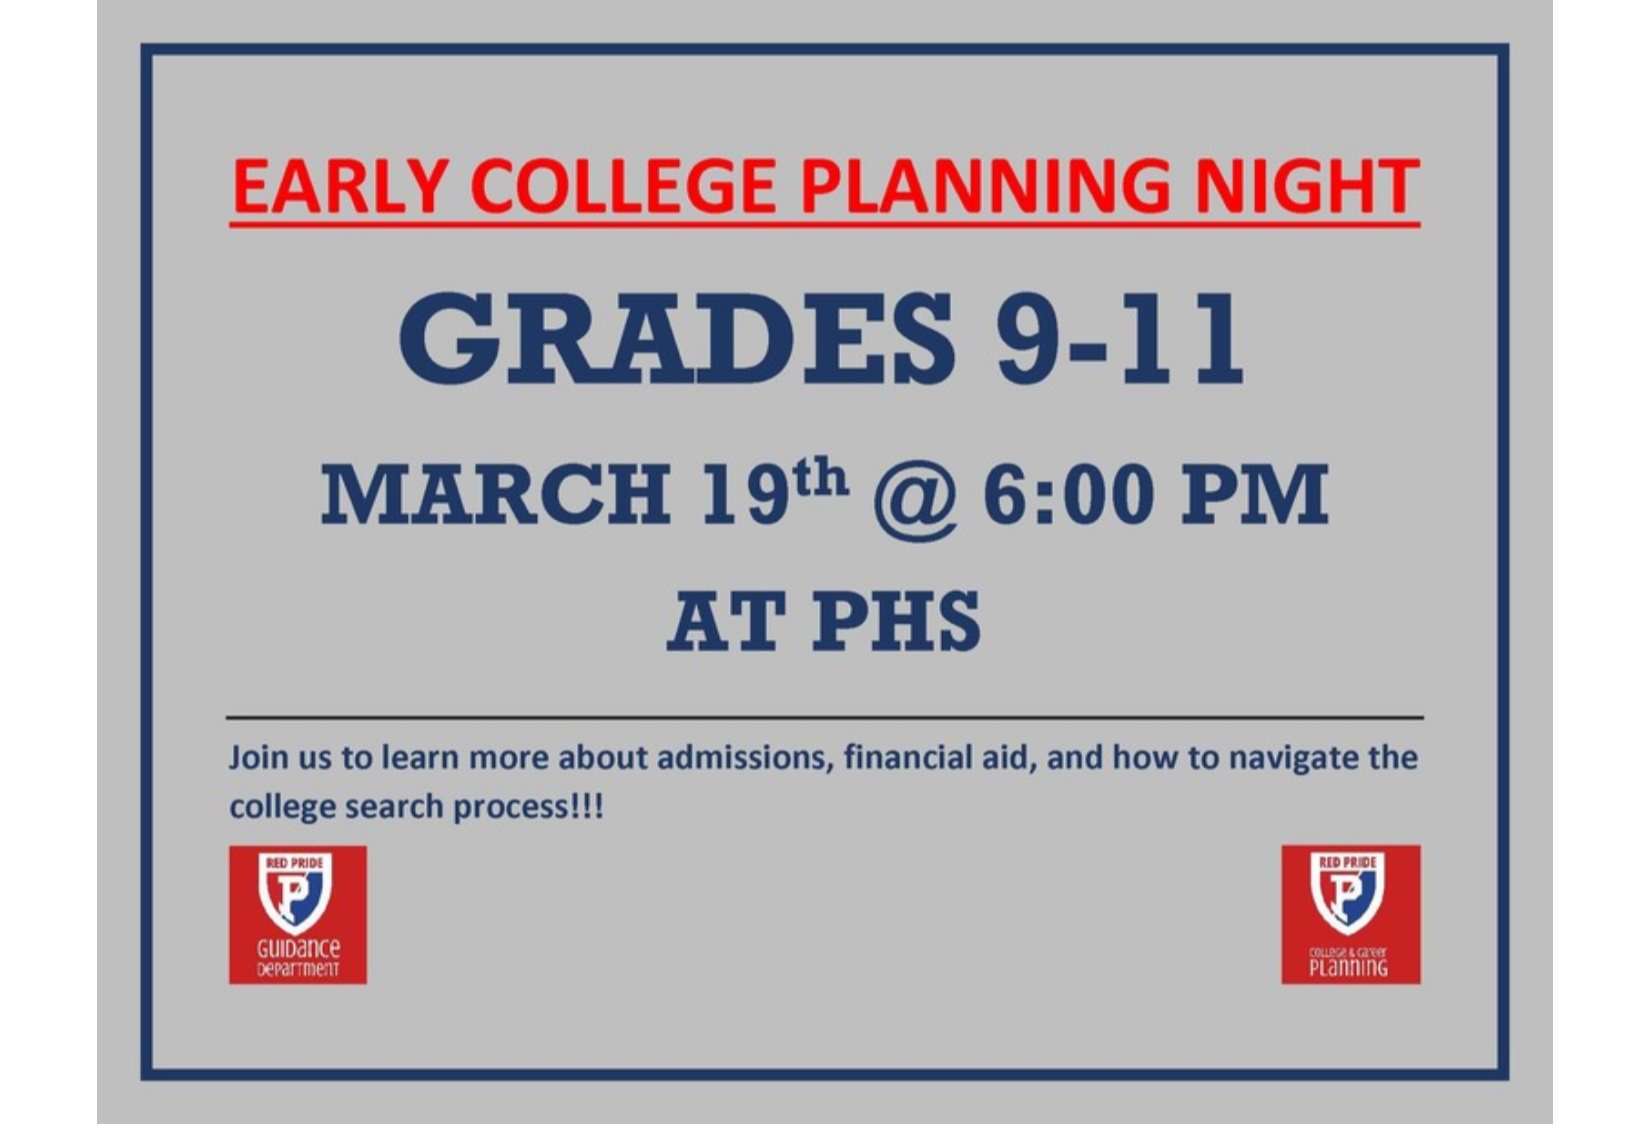 early college planning night flyer